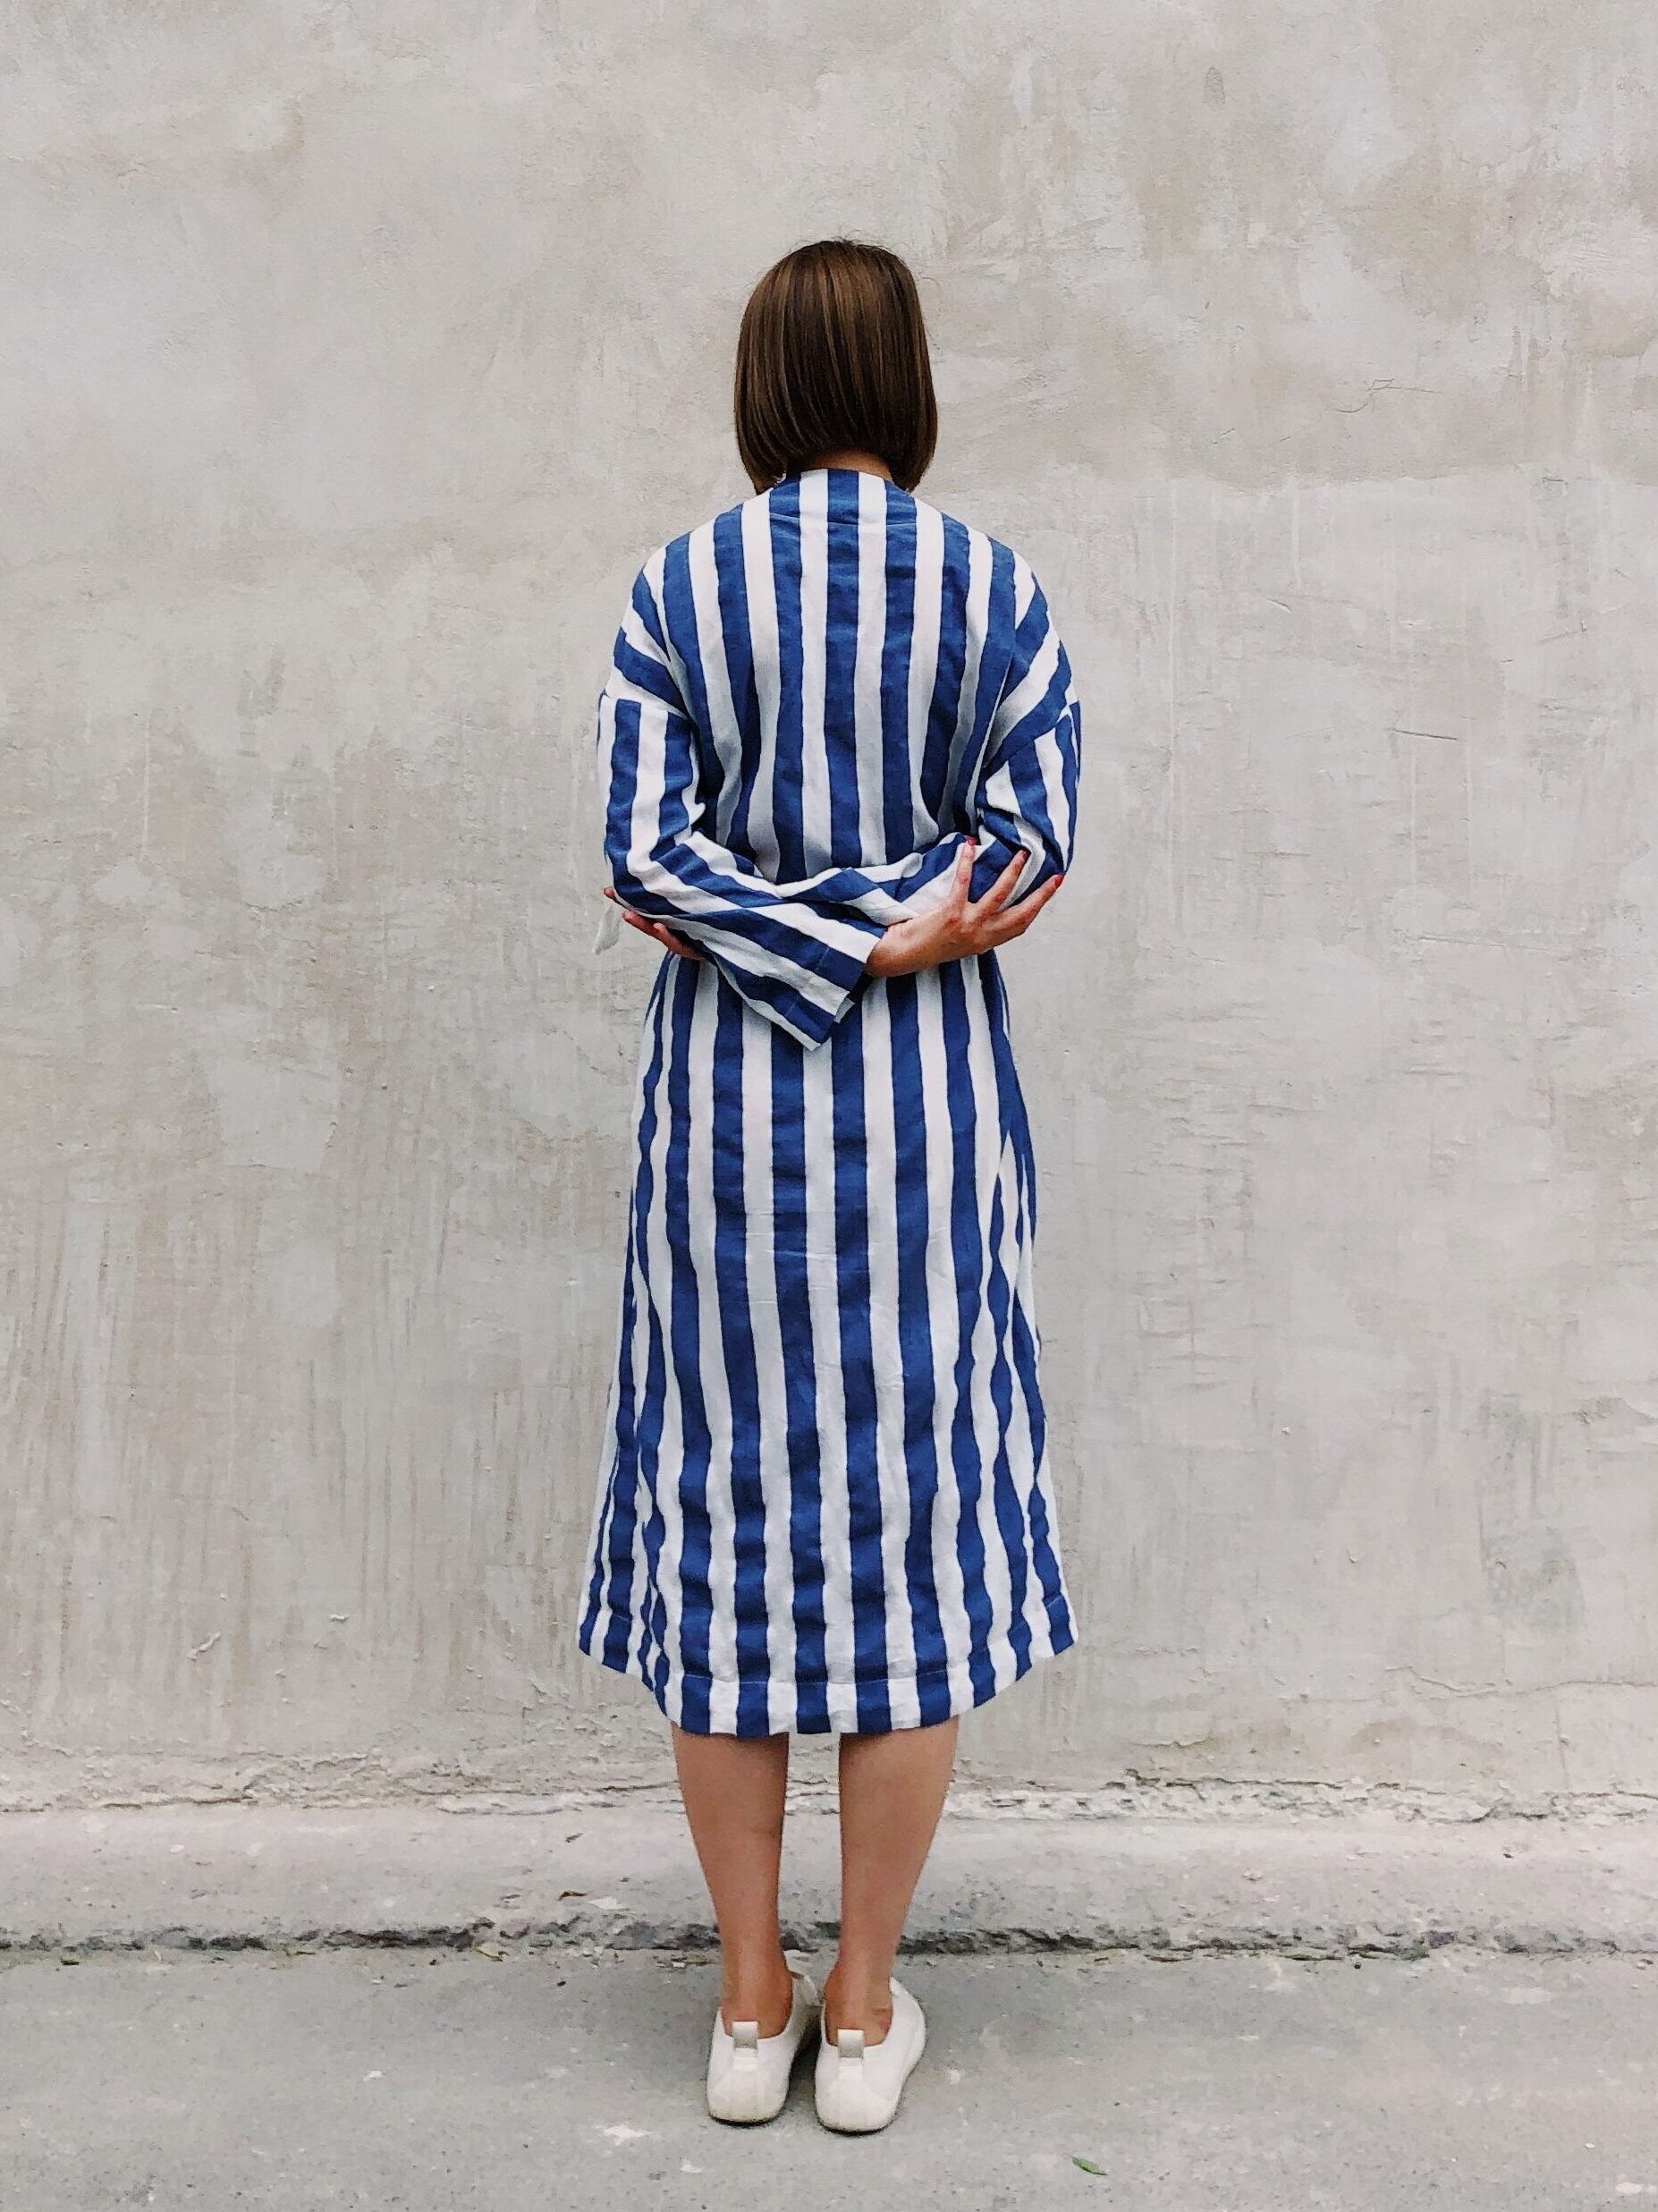 Hitting The Wall (woman in blue and white striped dress, facing away from camera towards stone/plaster wall)